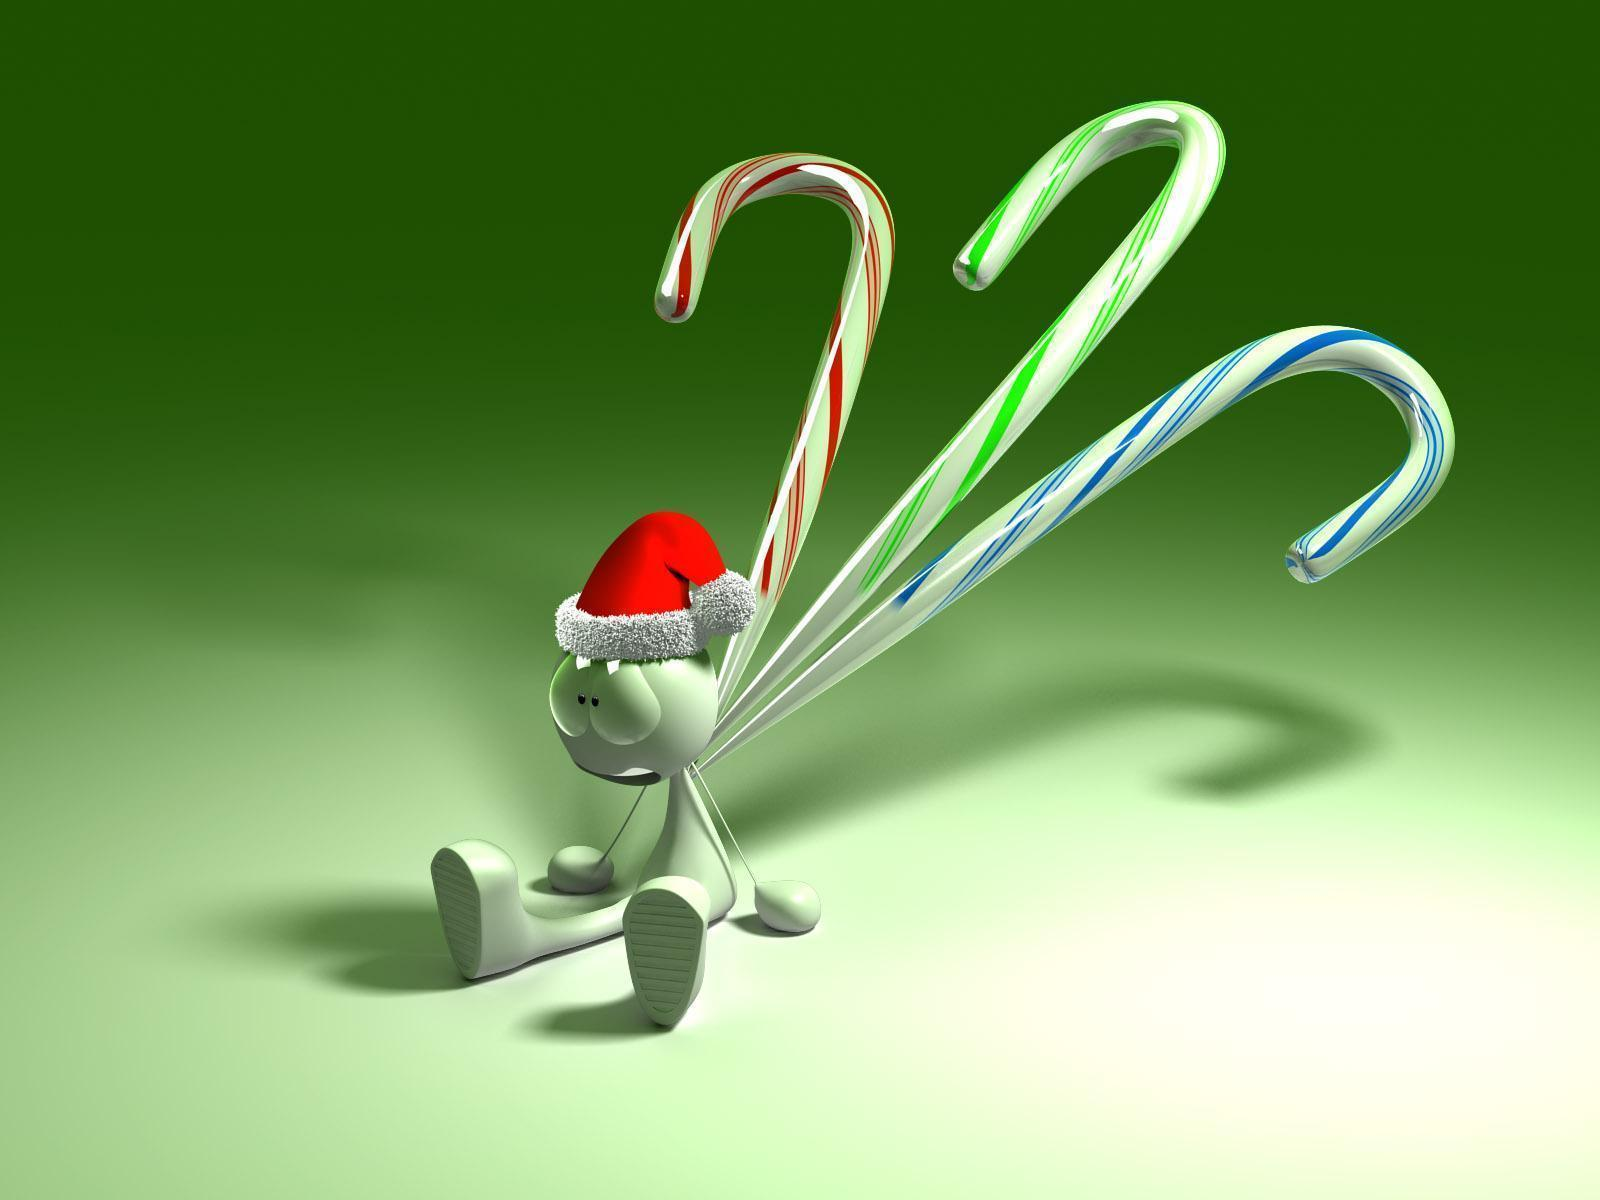 Candy Cane Backgrounds - Wallpaper Cave